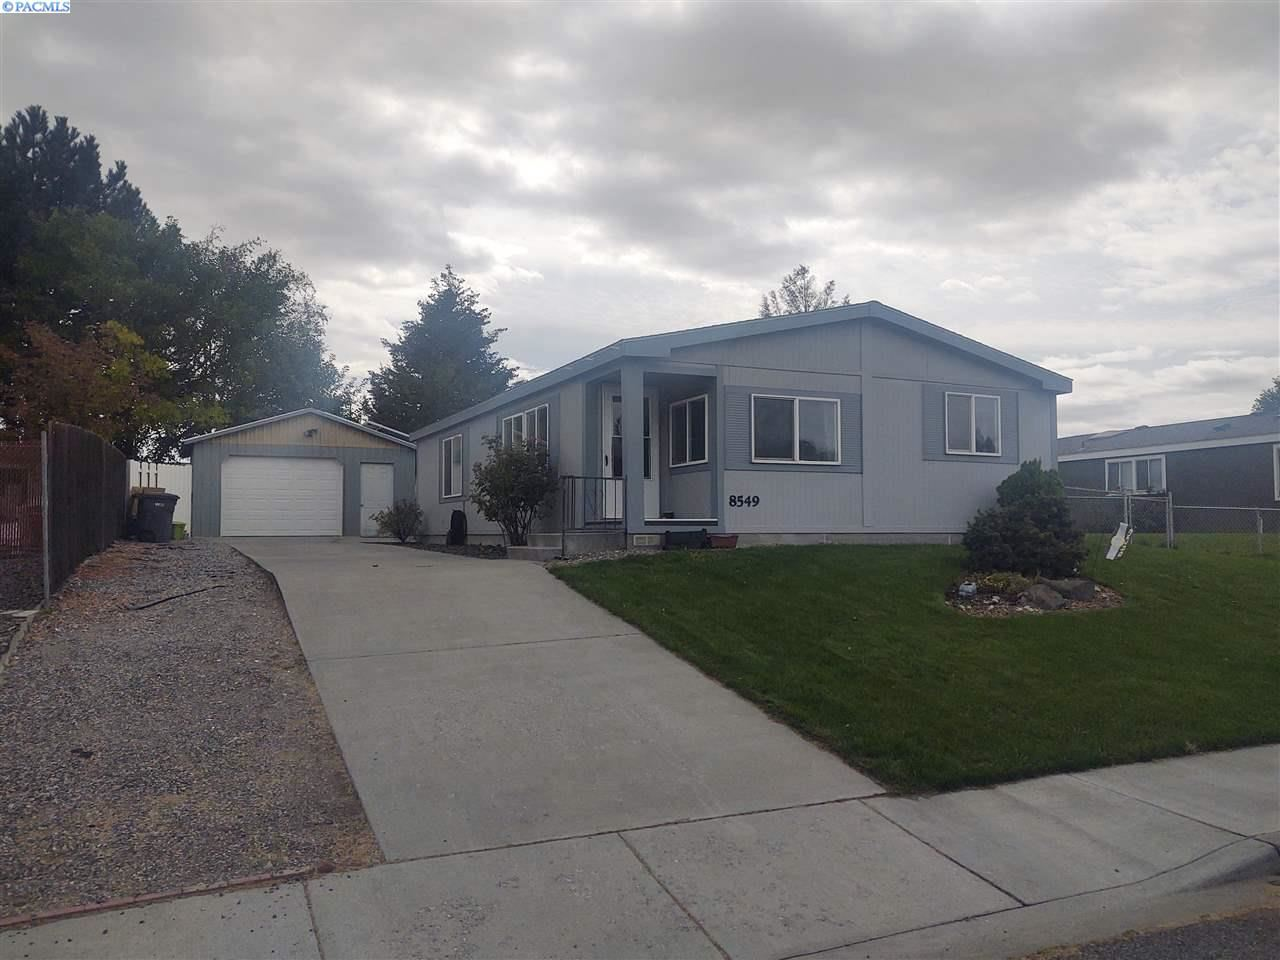 Photo of 8549 W Arrowhead, Kennewick, WA 99336 (MLS # 248946)